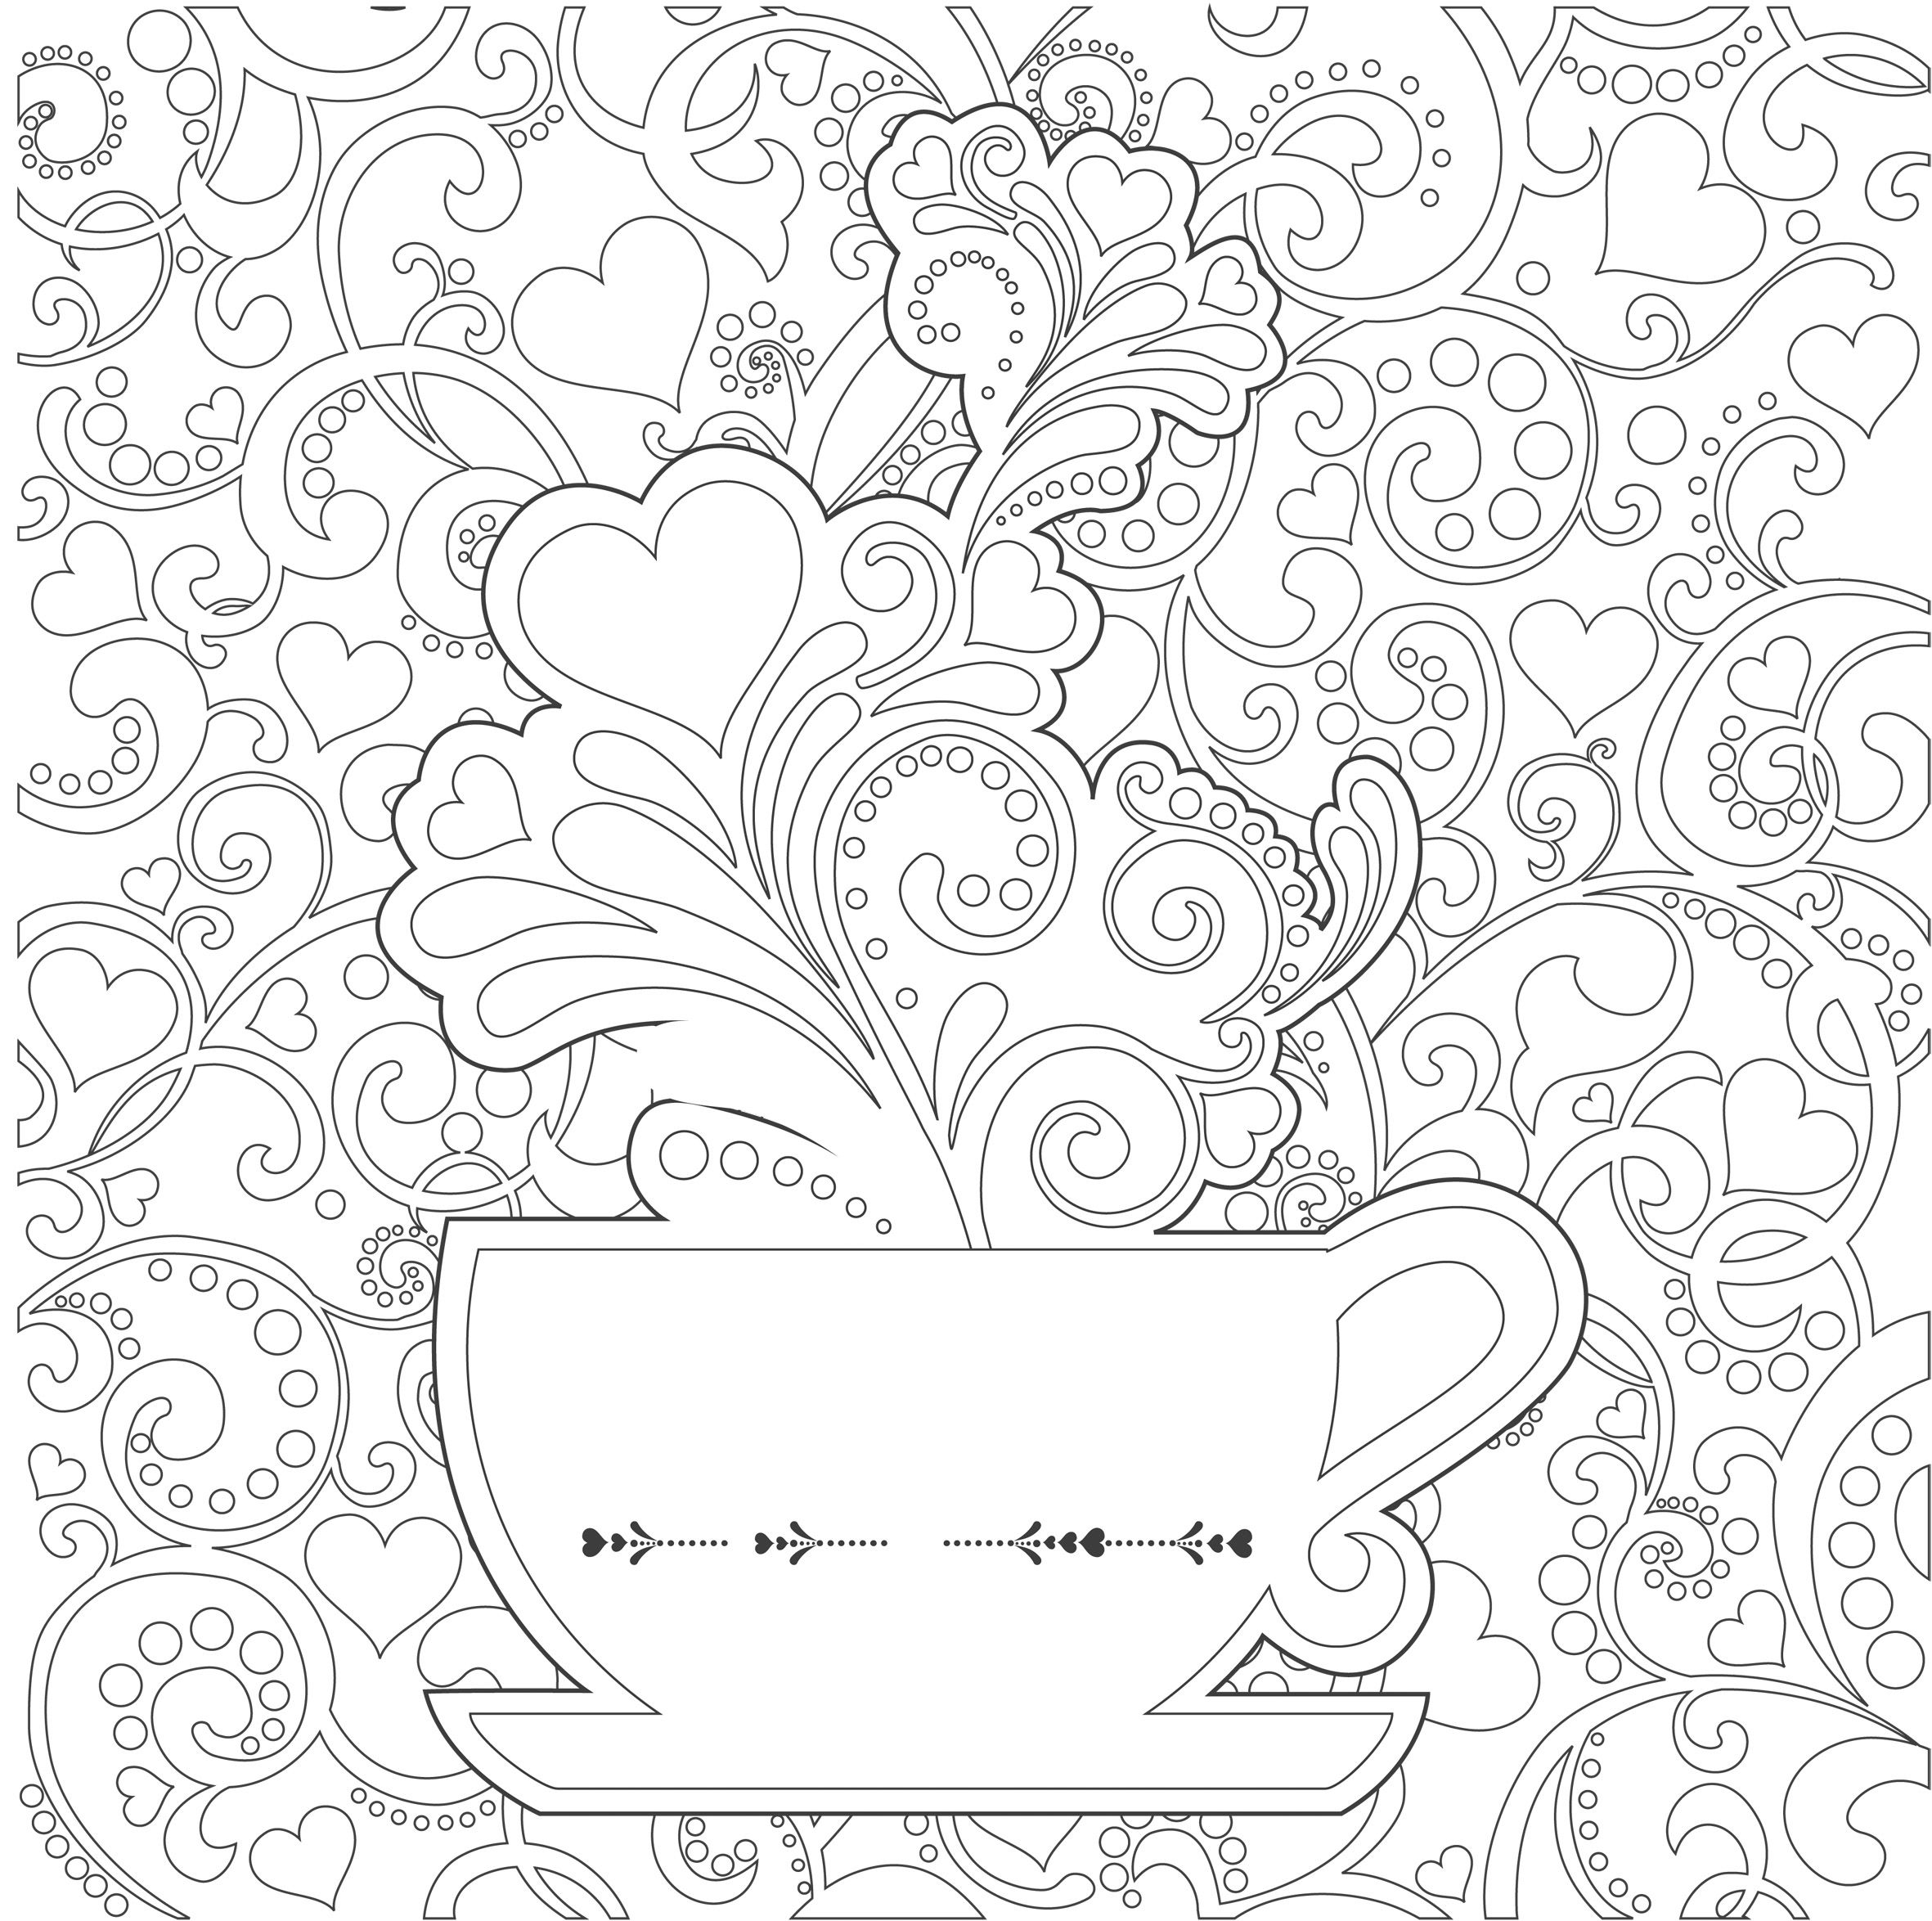 psychedelique coloriage antistress coloriage inspiration vintage coloriages inspiration